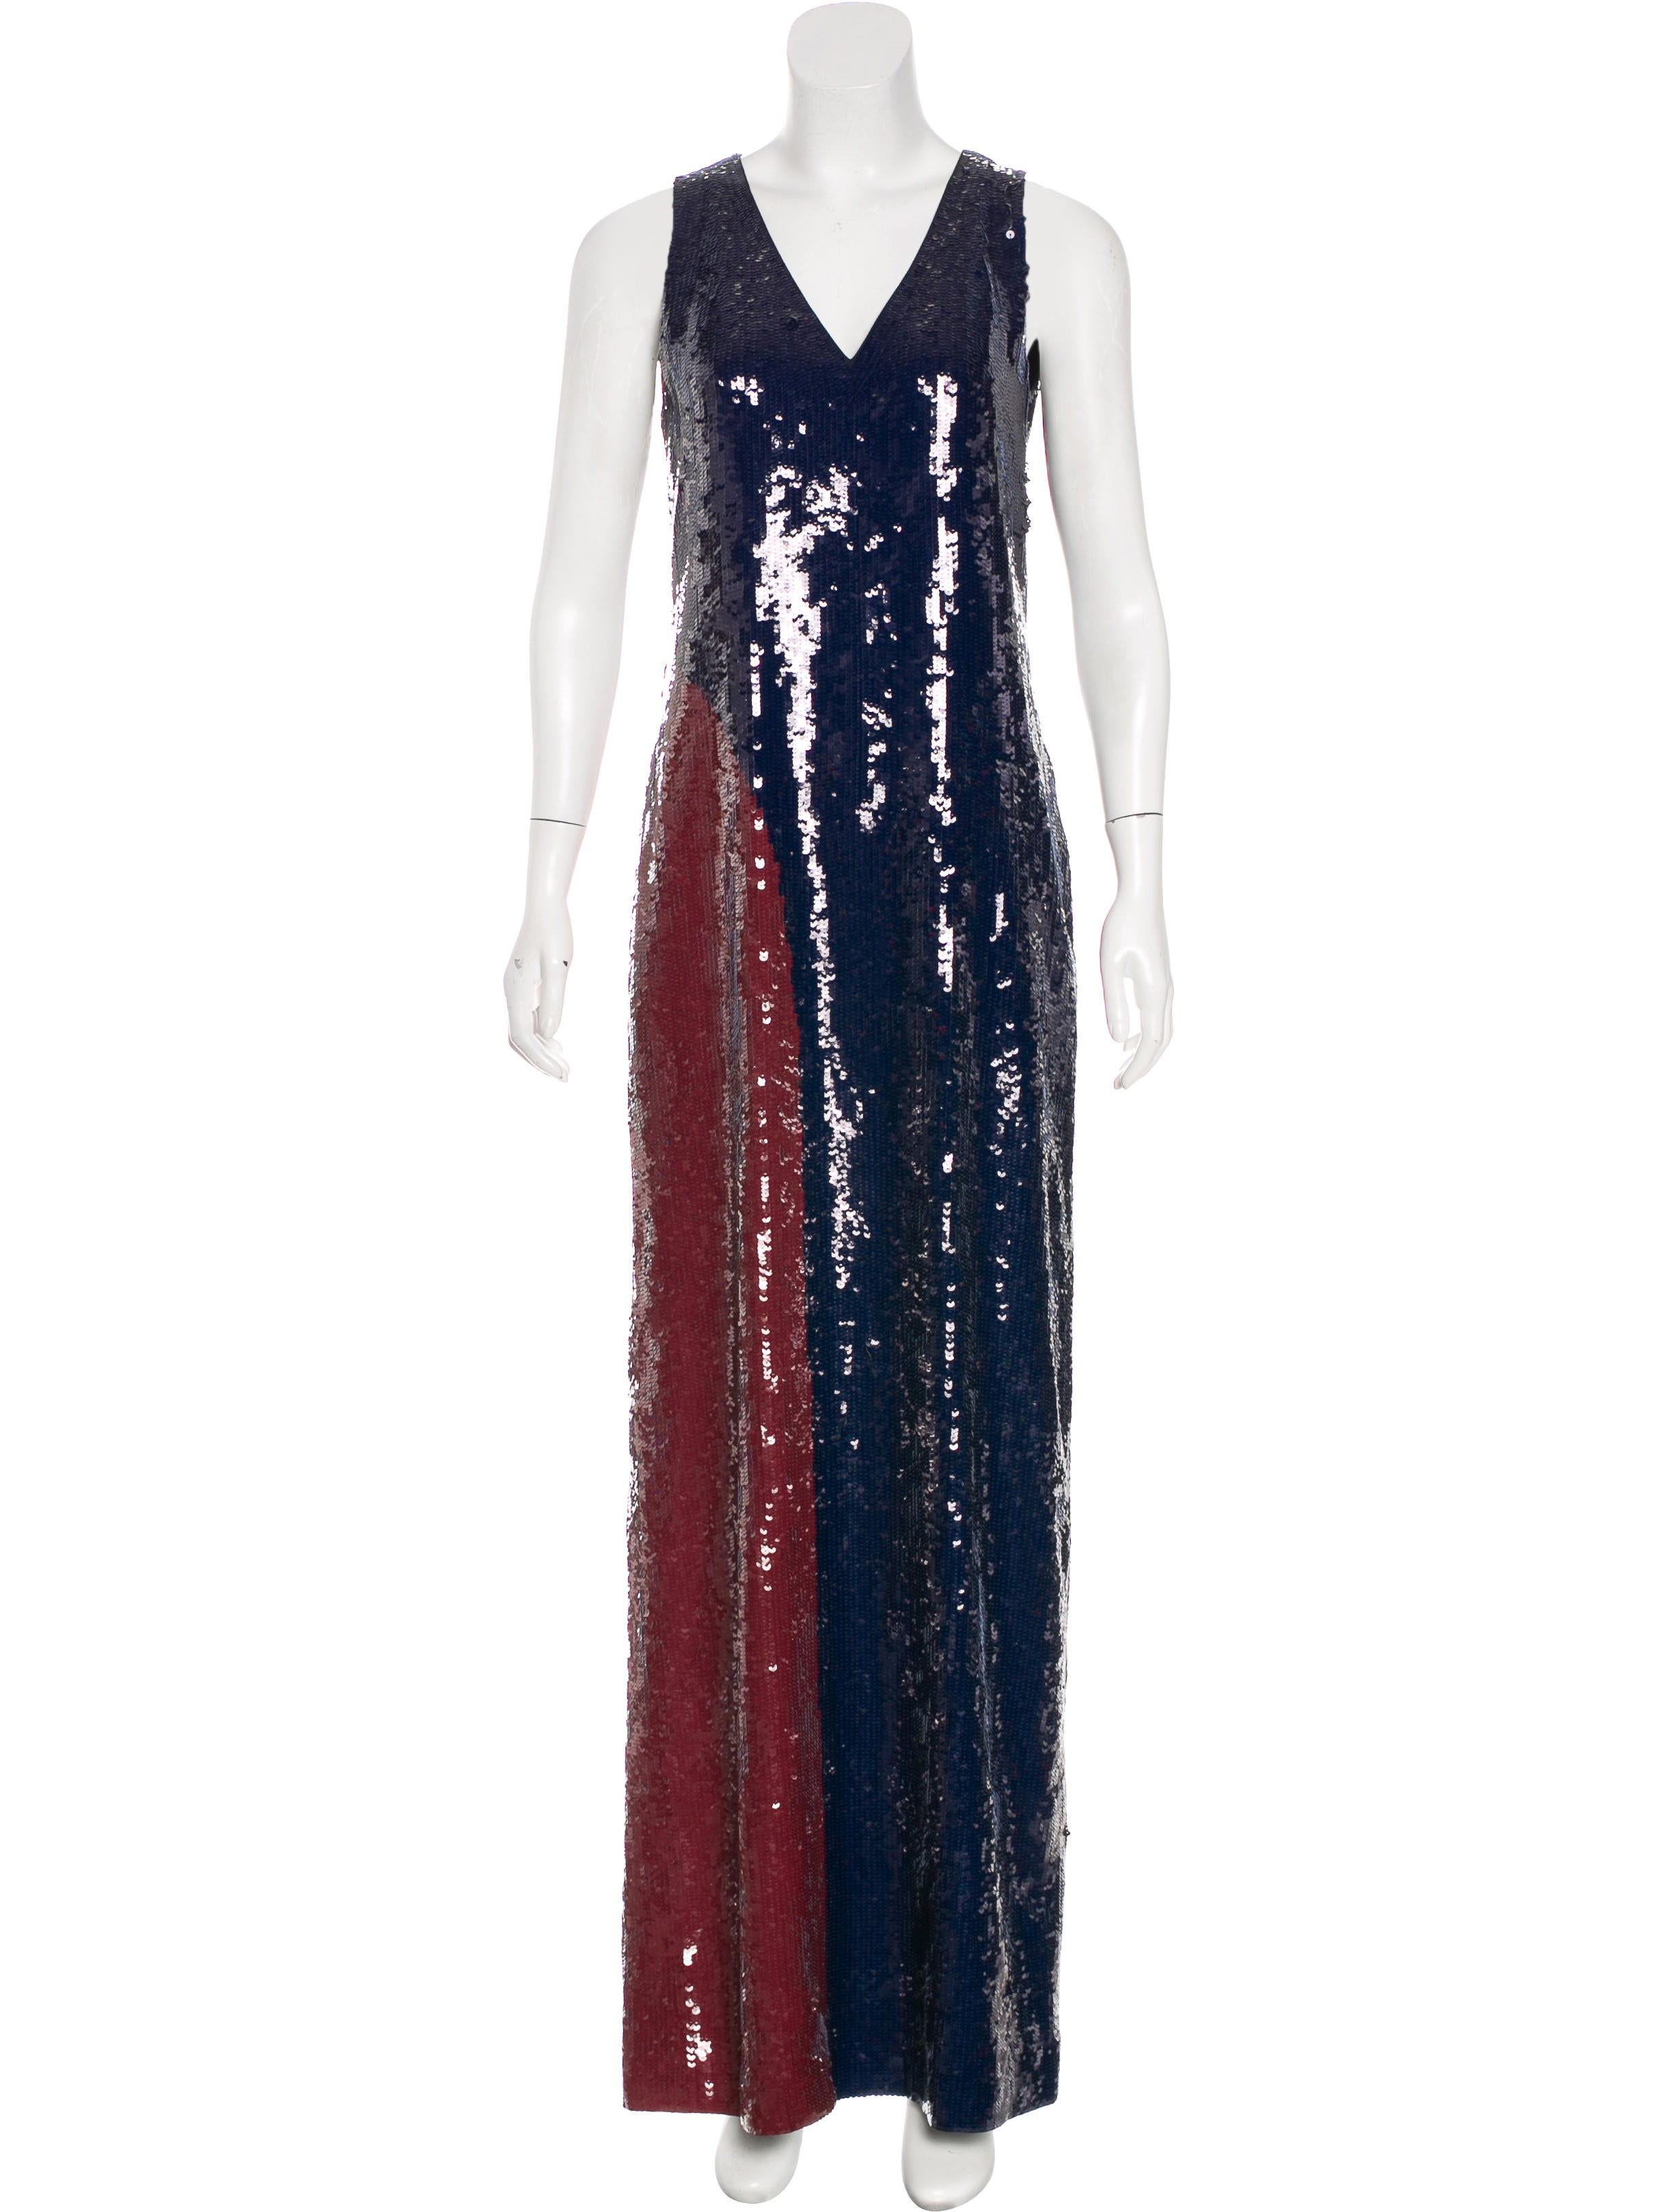 Tory Burch Ophelia Evening Dress w/ Tags - Clothing - WTO121088 ...